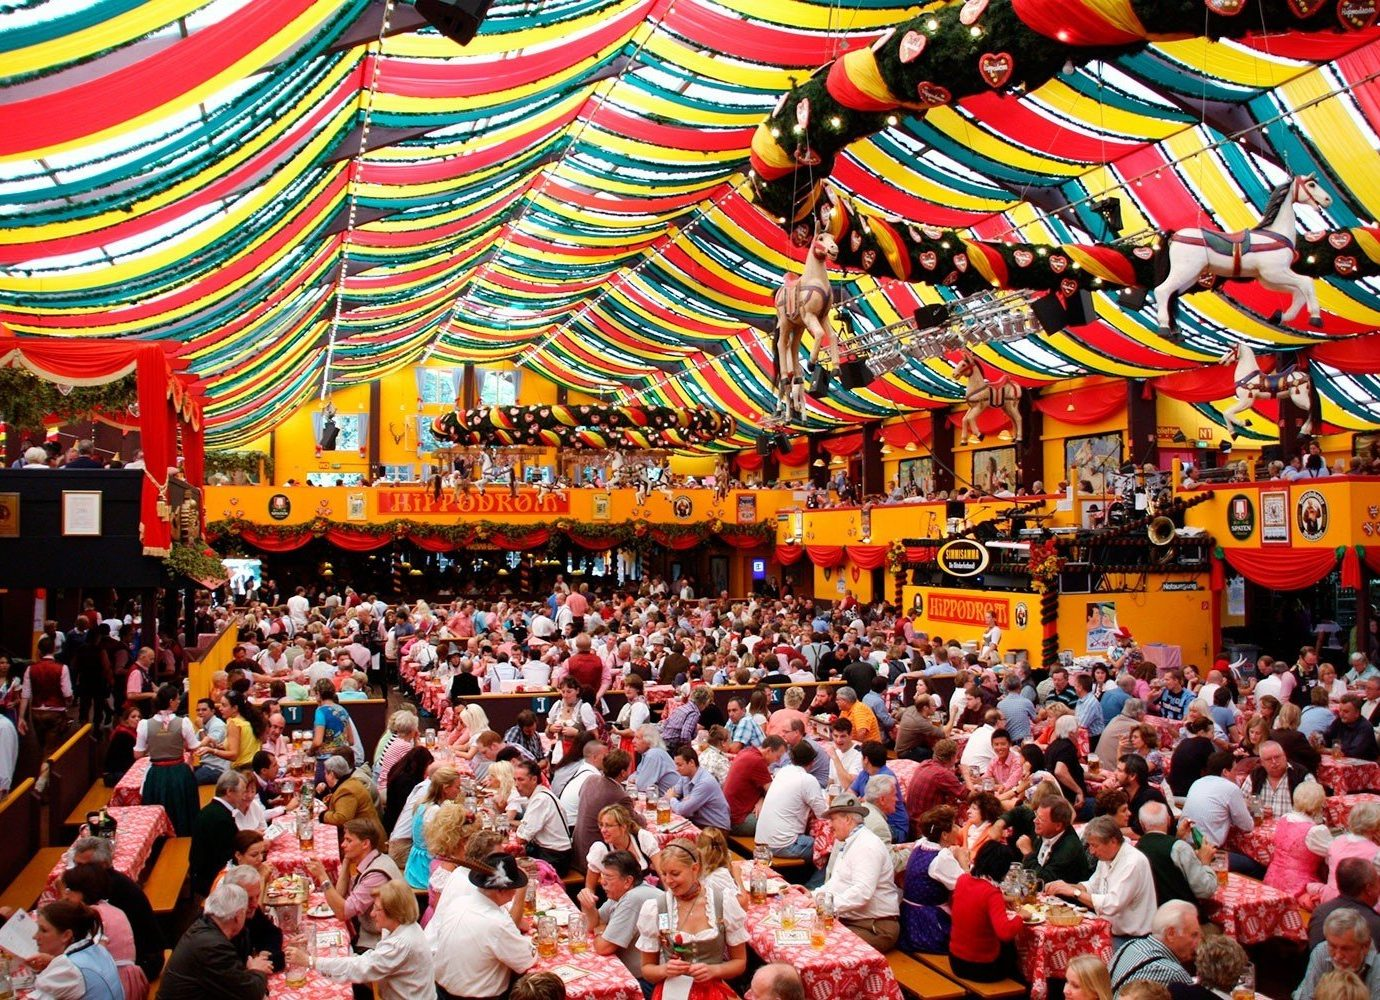 Trip Ideas person crowd outdoor people colorful event festival audience market chinese new year bazaar carnival colored auditorium